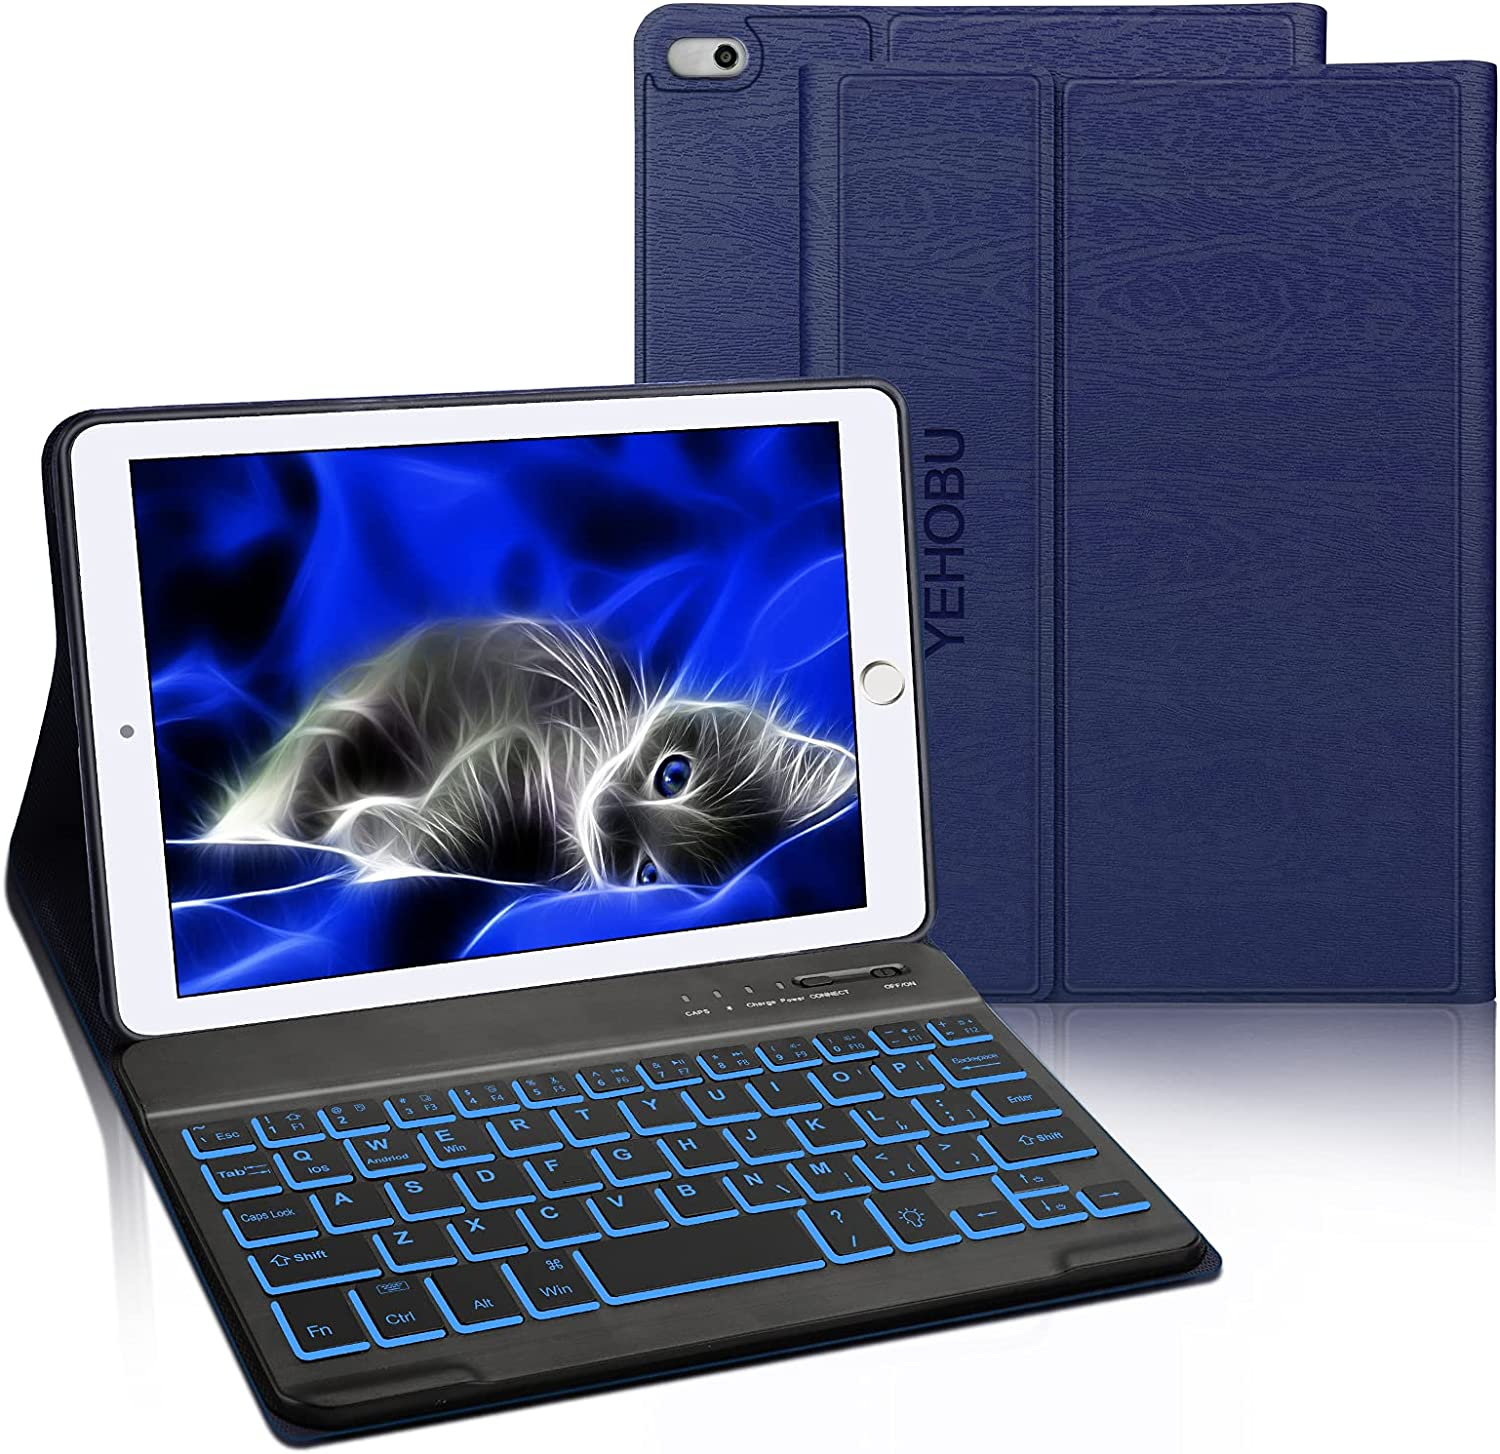 Wireless Keyboard Case for iPad Mini 5 (5th Gen 2019), Soft Rubber PU Case with 7 Colors Backlit Bluetooth Keyboard fit for 7.9 Inch iPad Mini 5 Mini 4/3/2/1 -Dark Blue